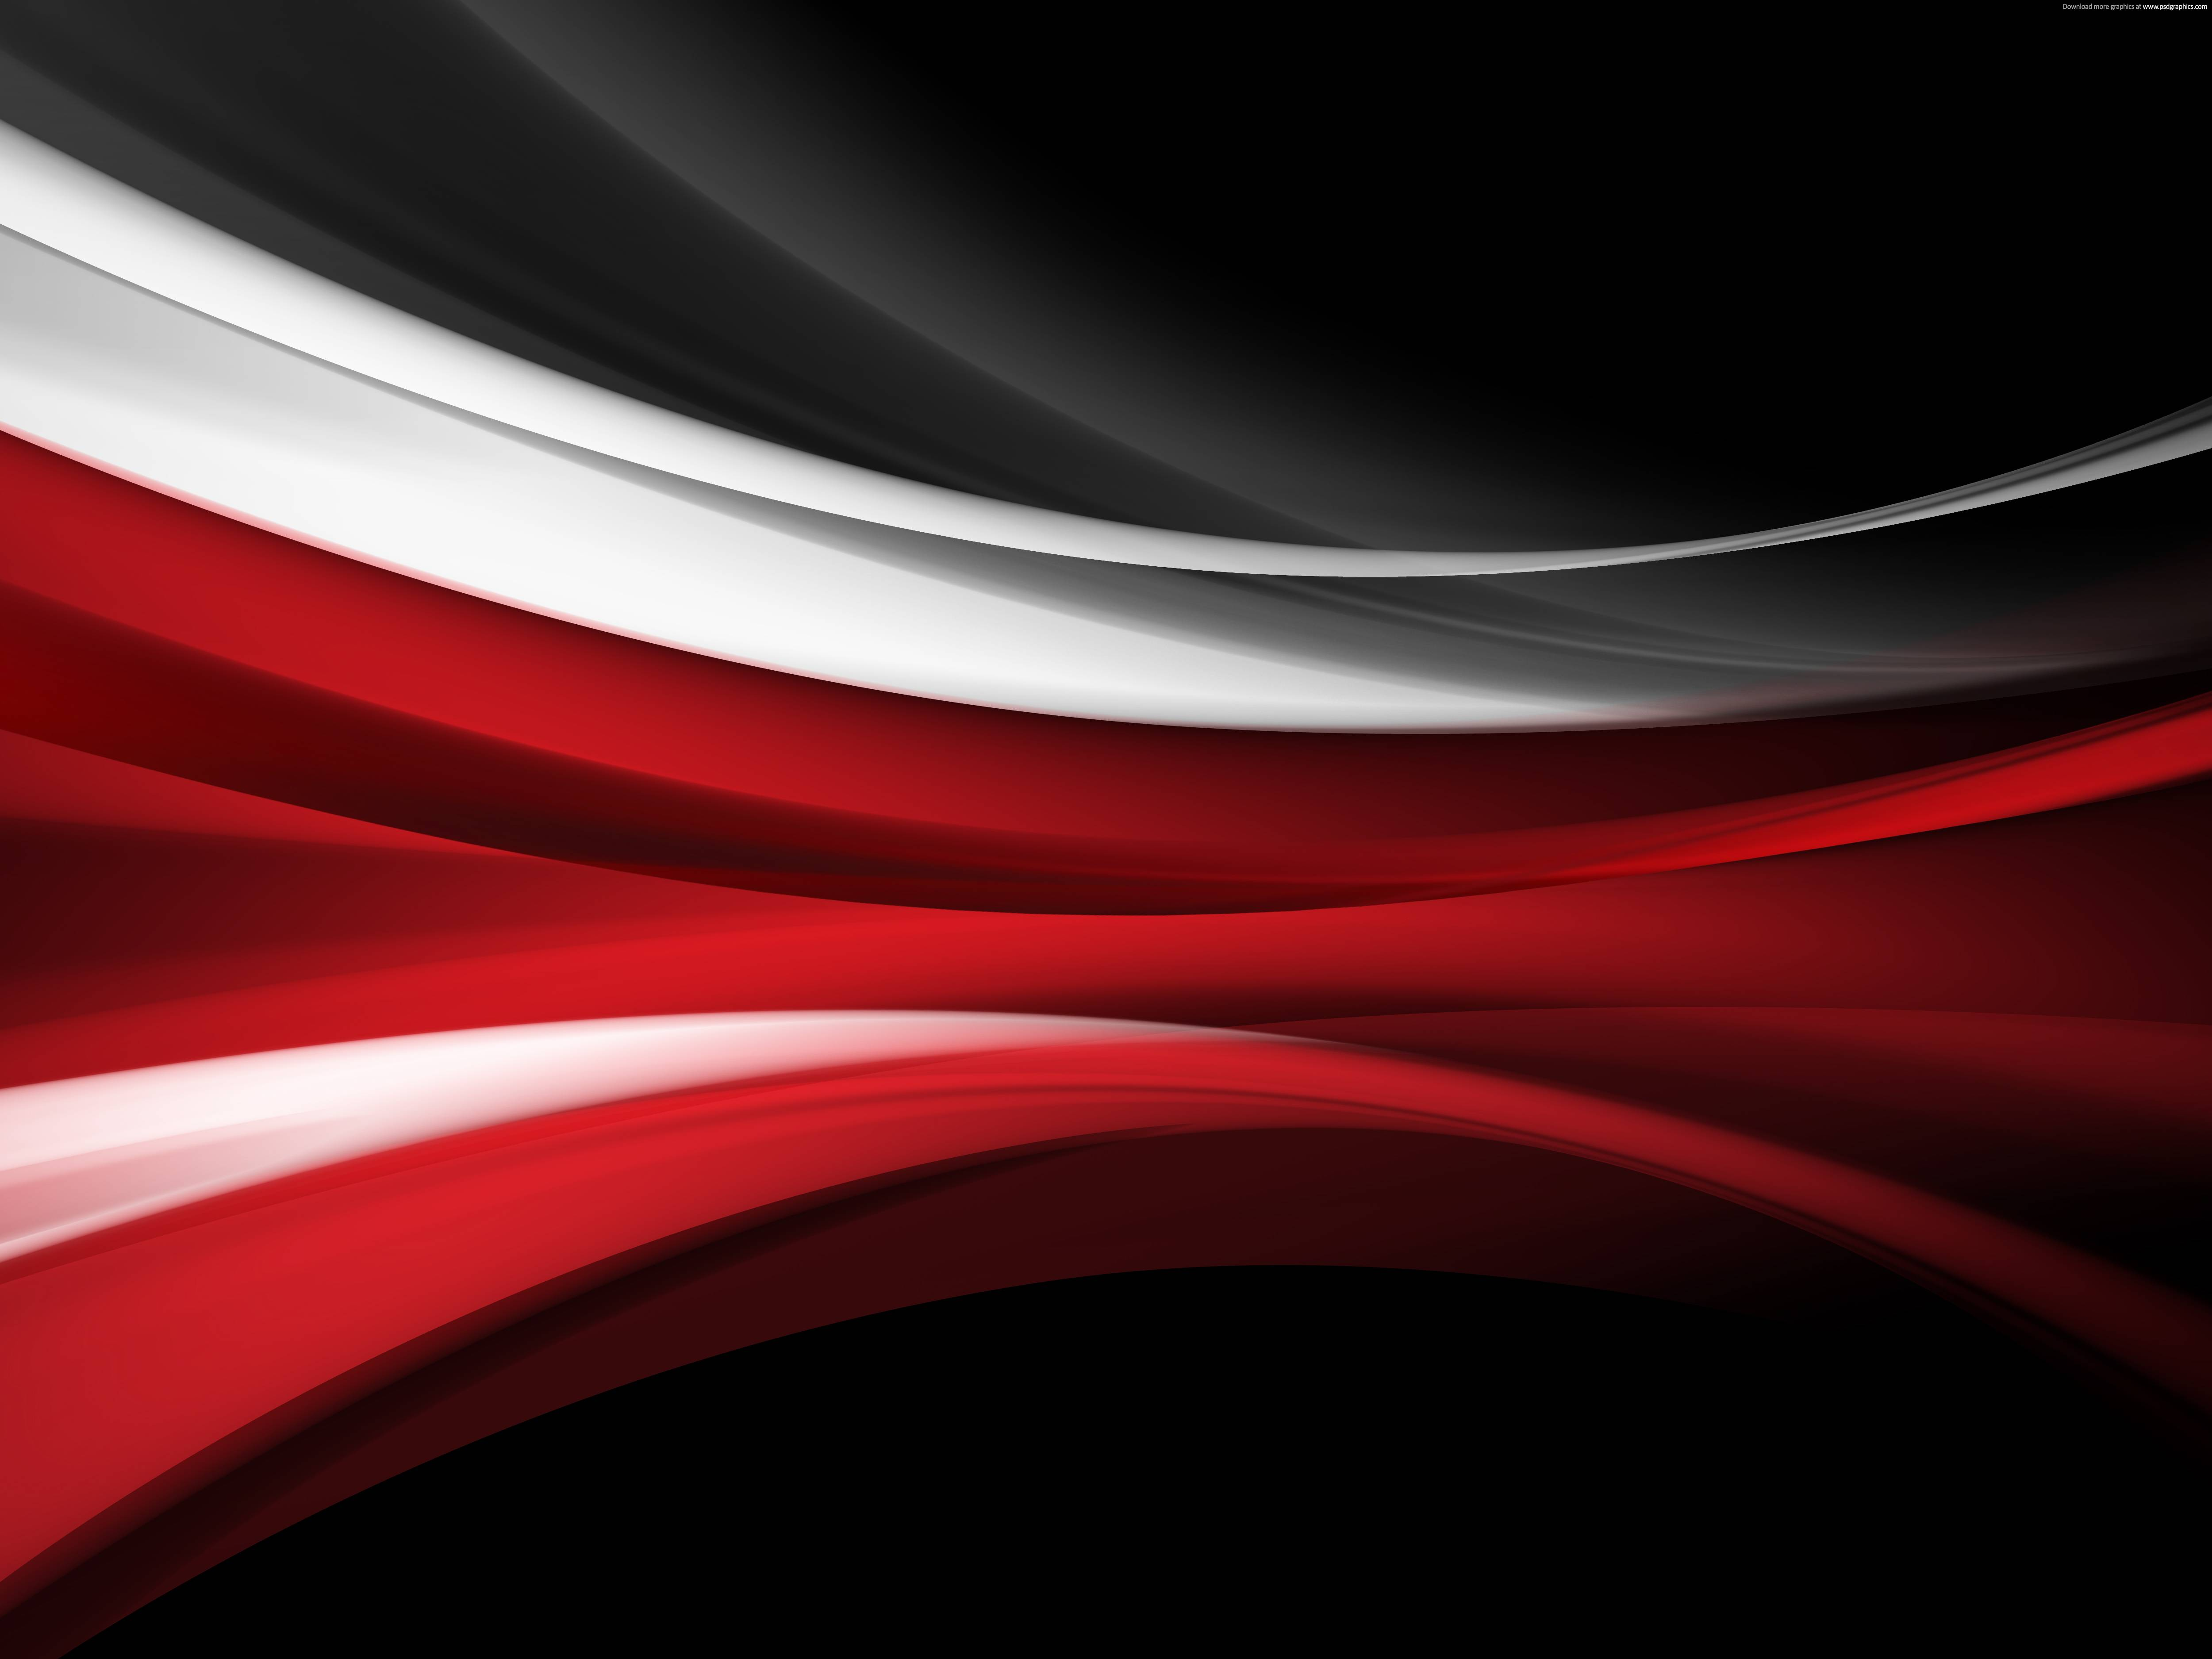 Red And Black Backgrounds - Wallpaper Cave